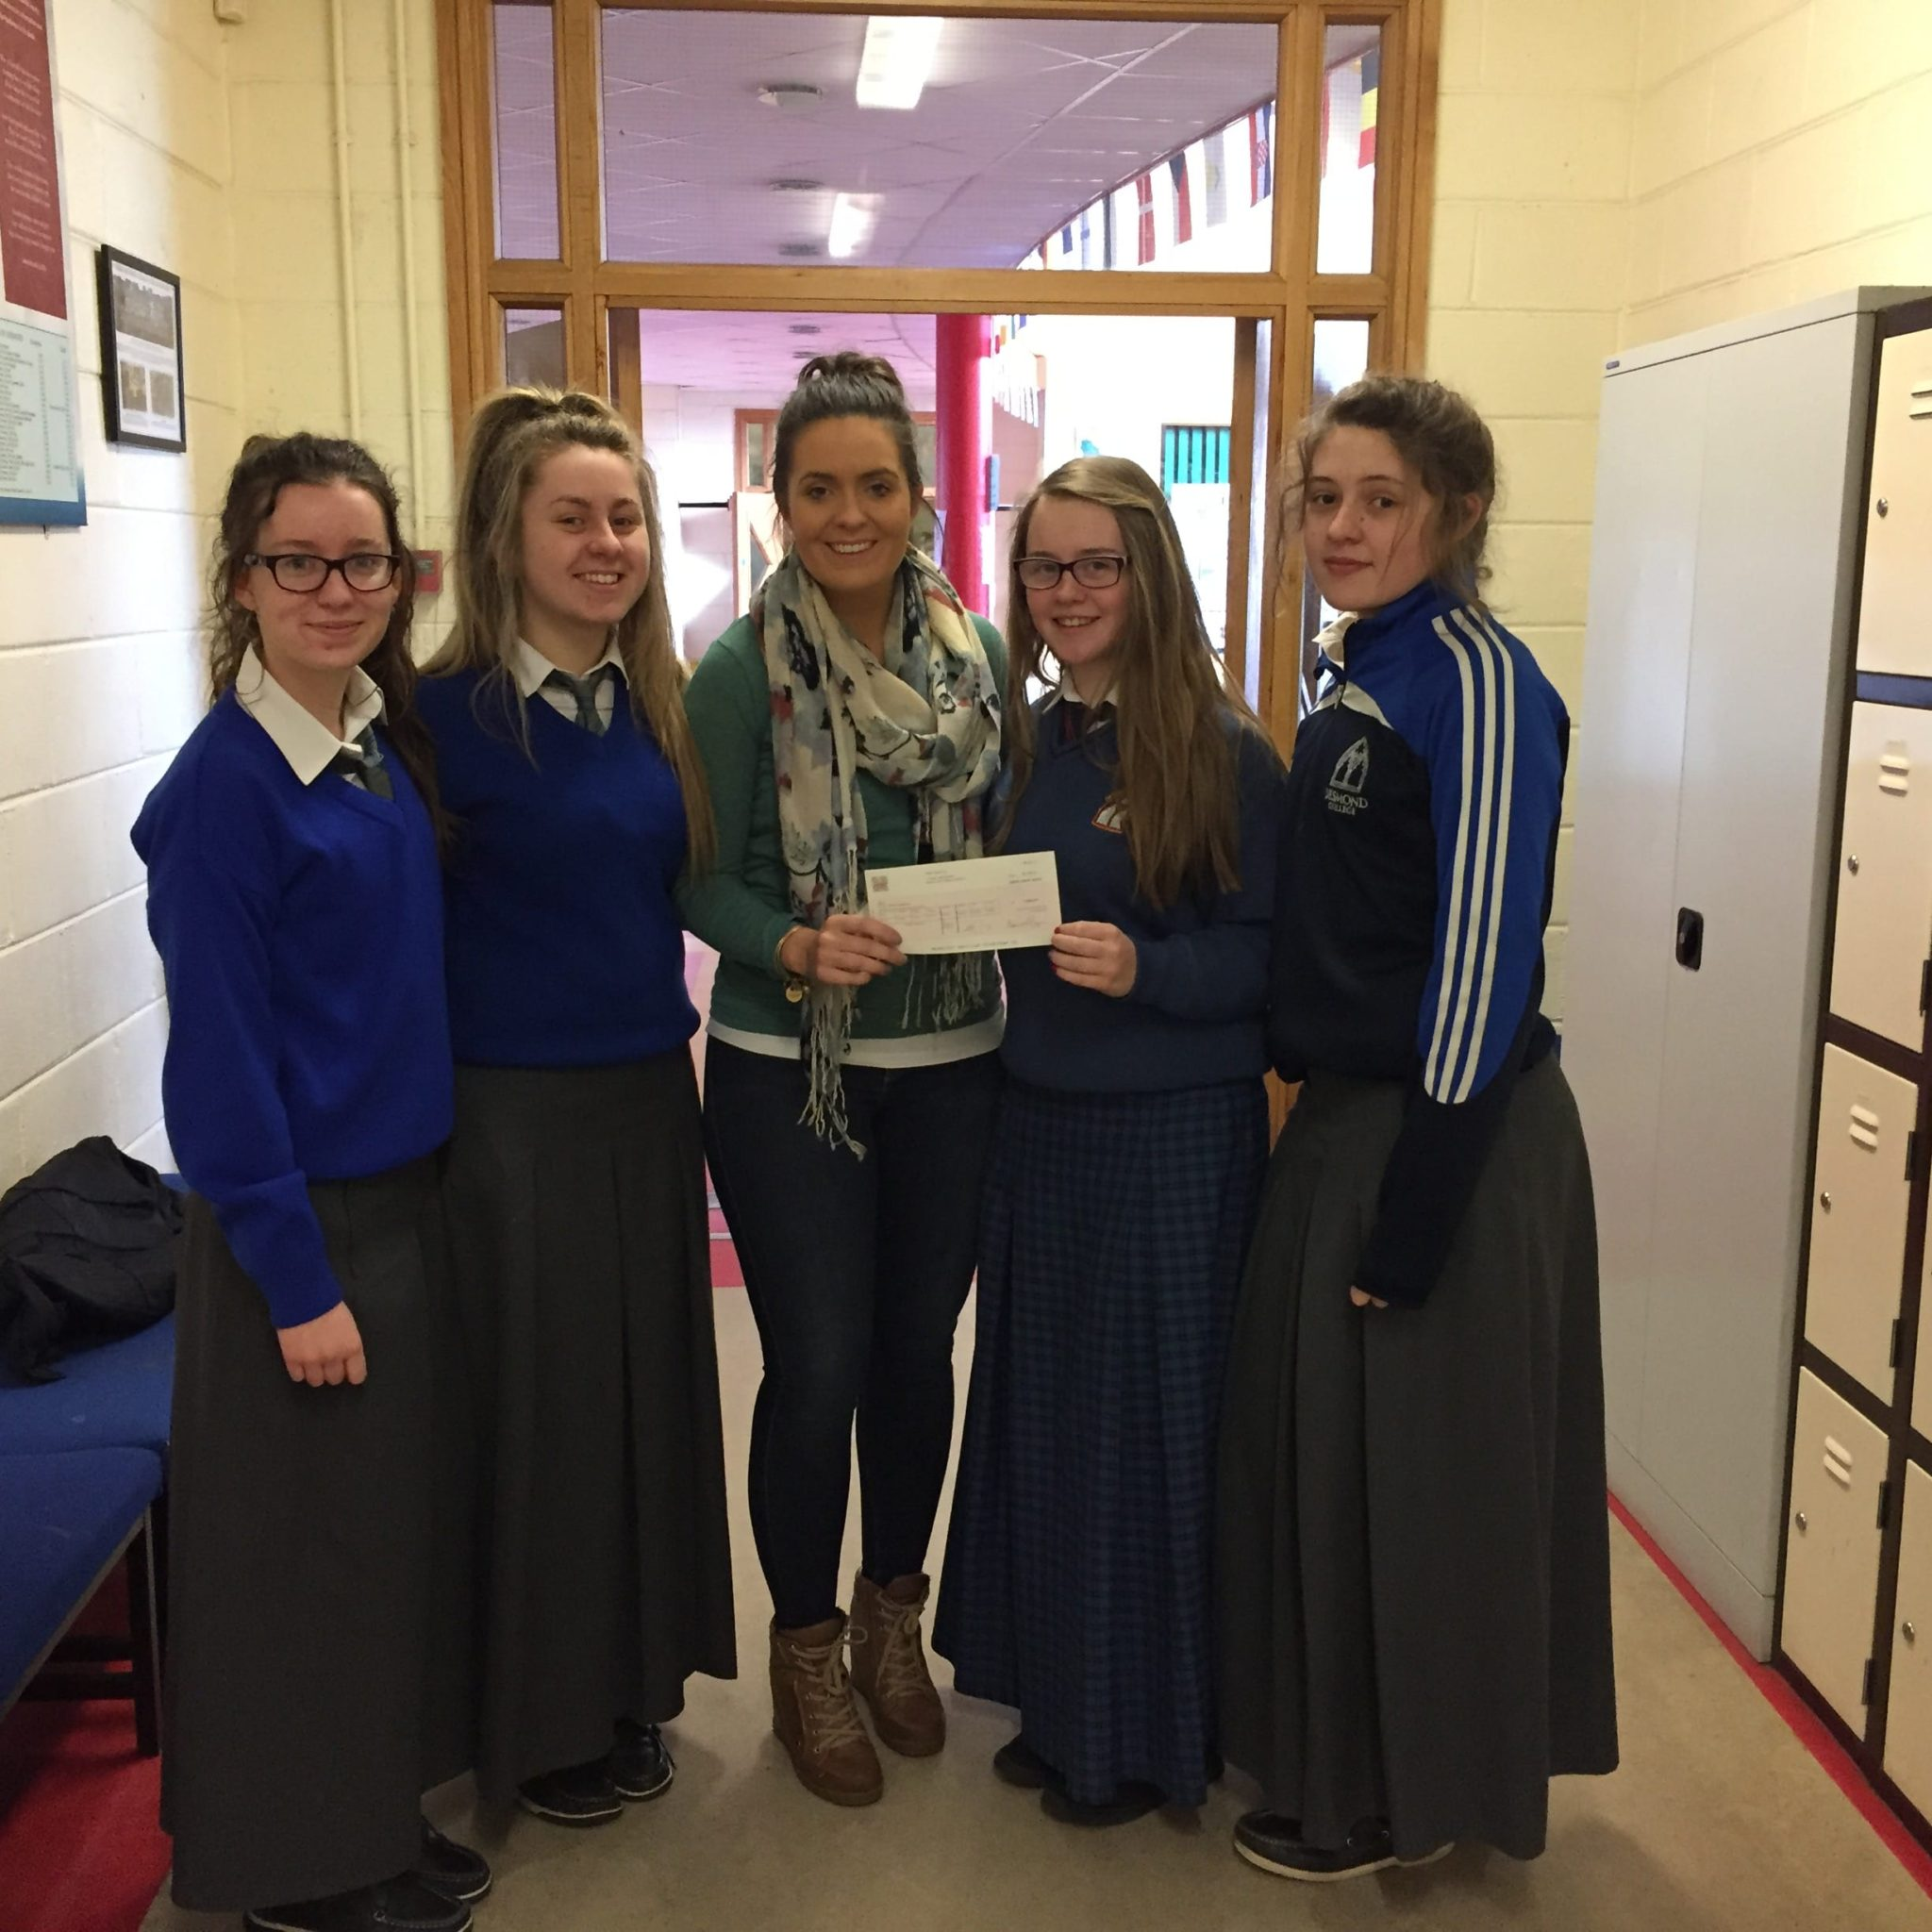 Feb 2016: Desmond College TY students who received a cheque from Tesco for their Hope Foundation immersion programme